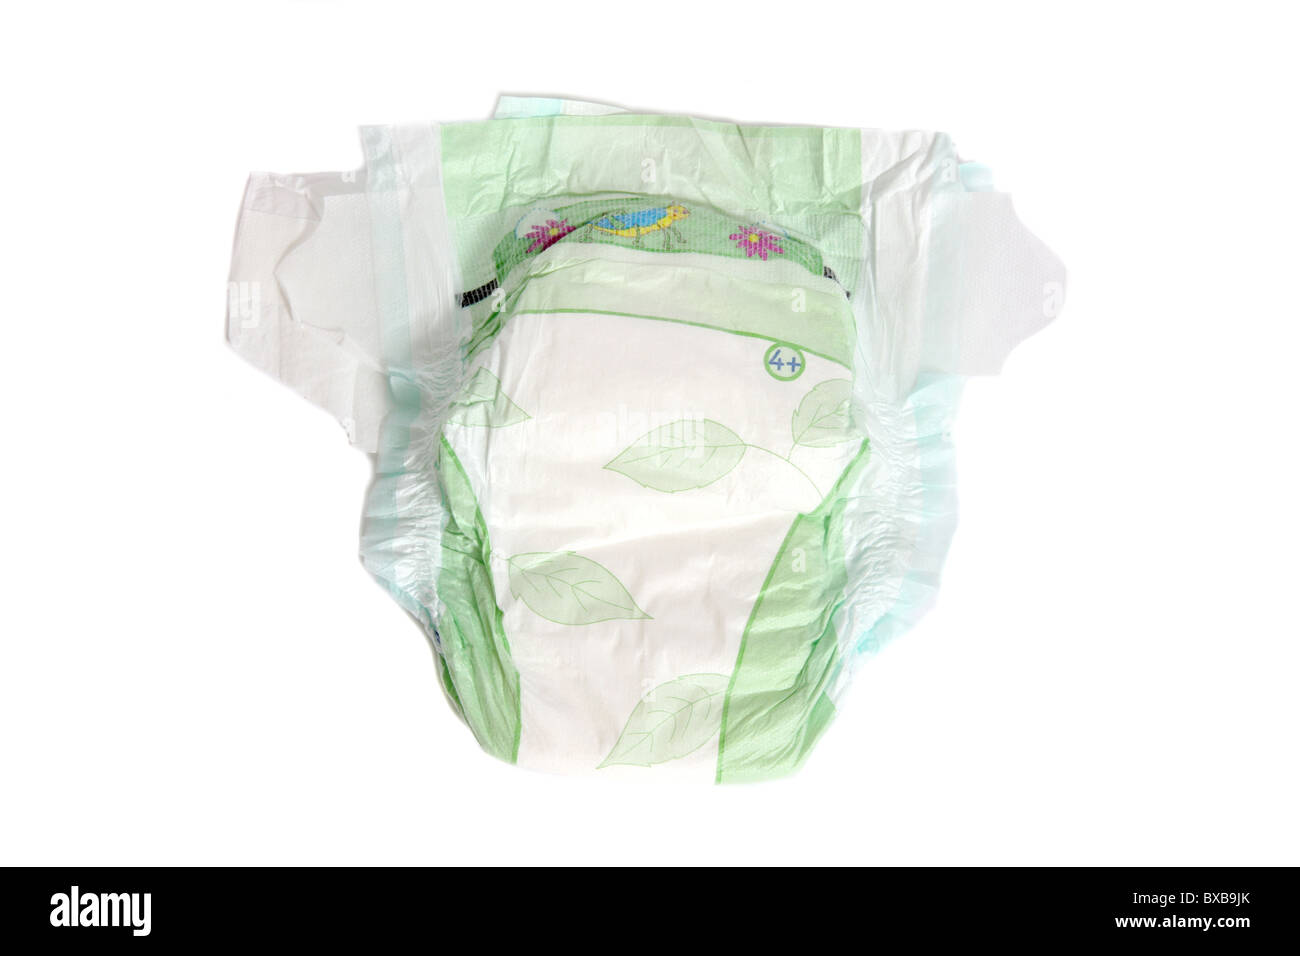 An unused disposable nappy. - Stock Image